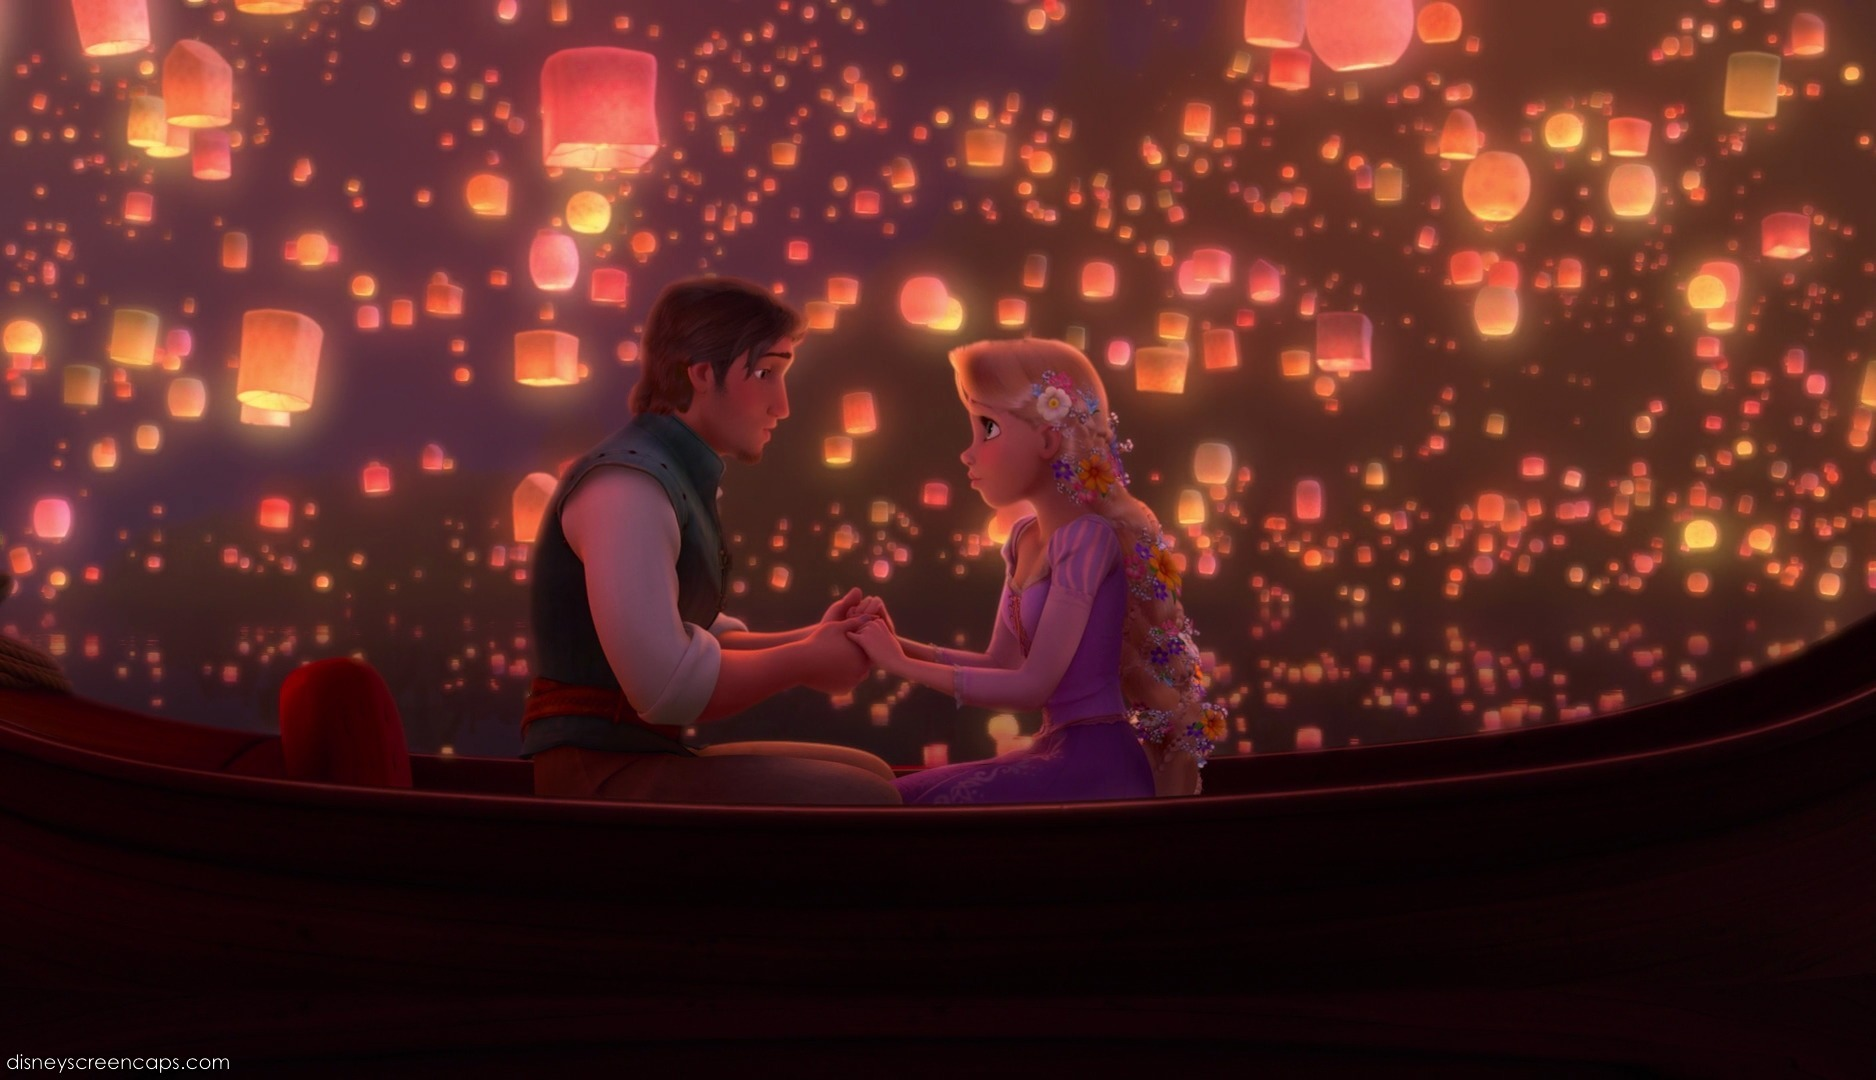 Tangled Wallpapers Boat Scene Main